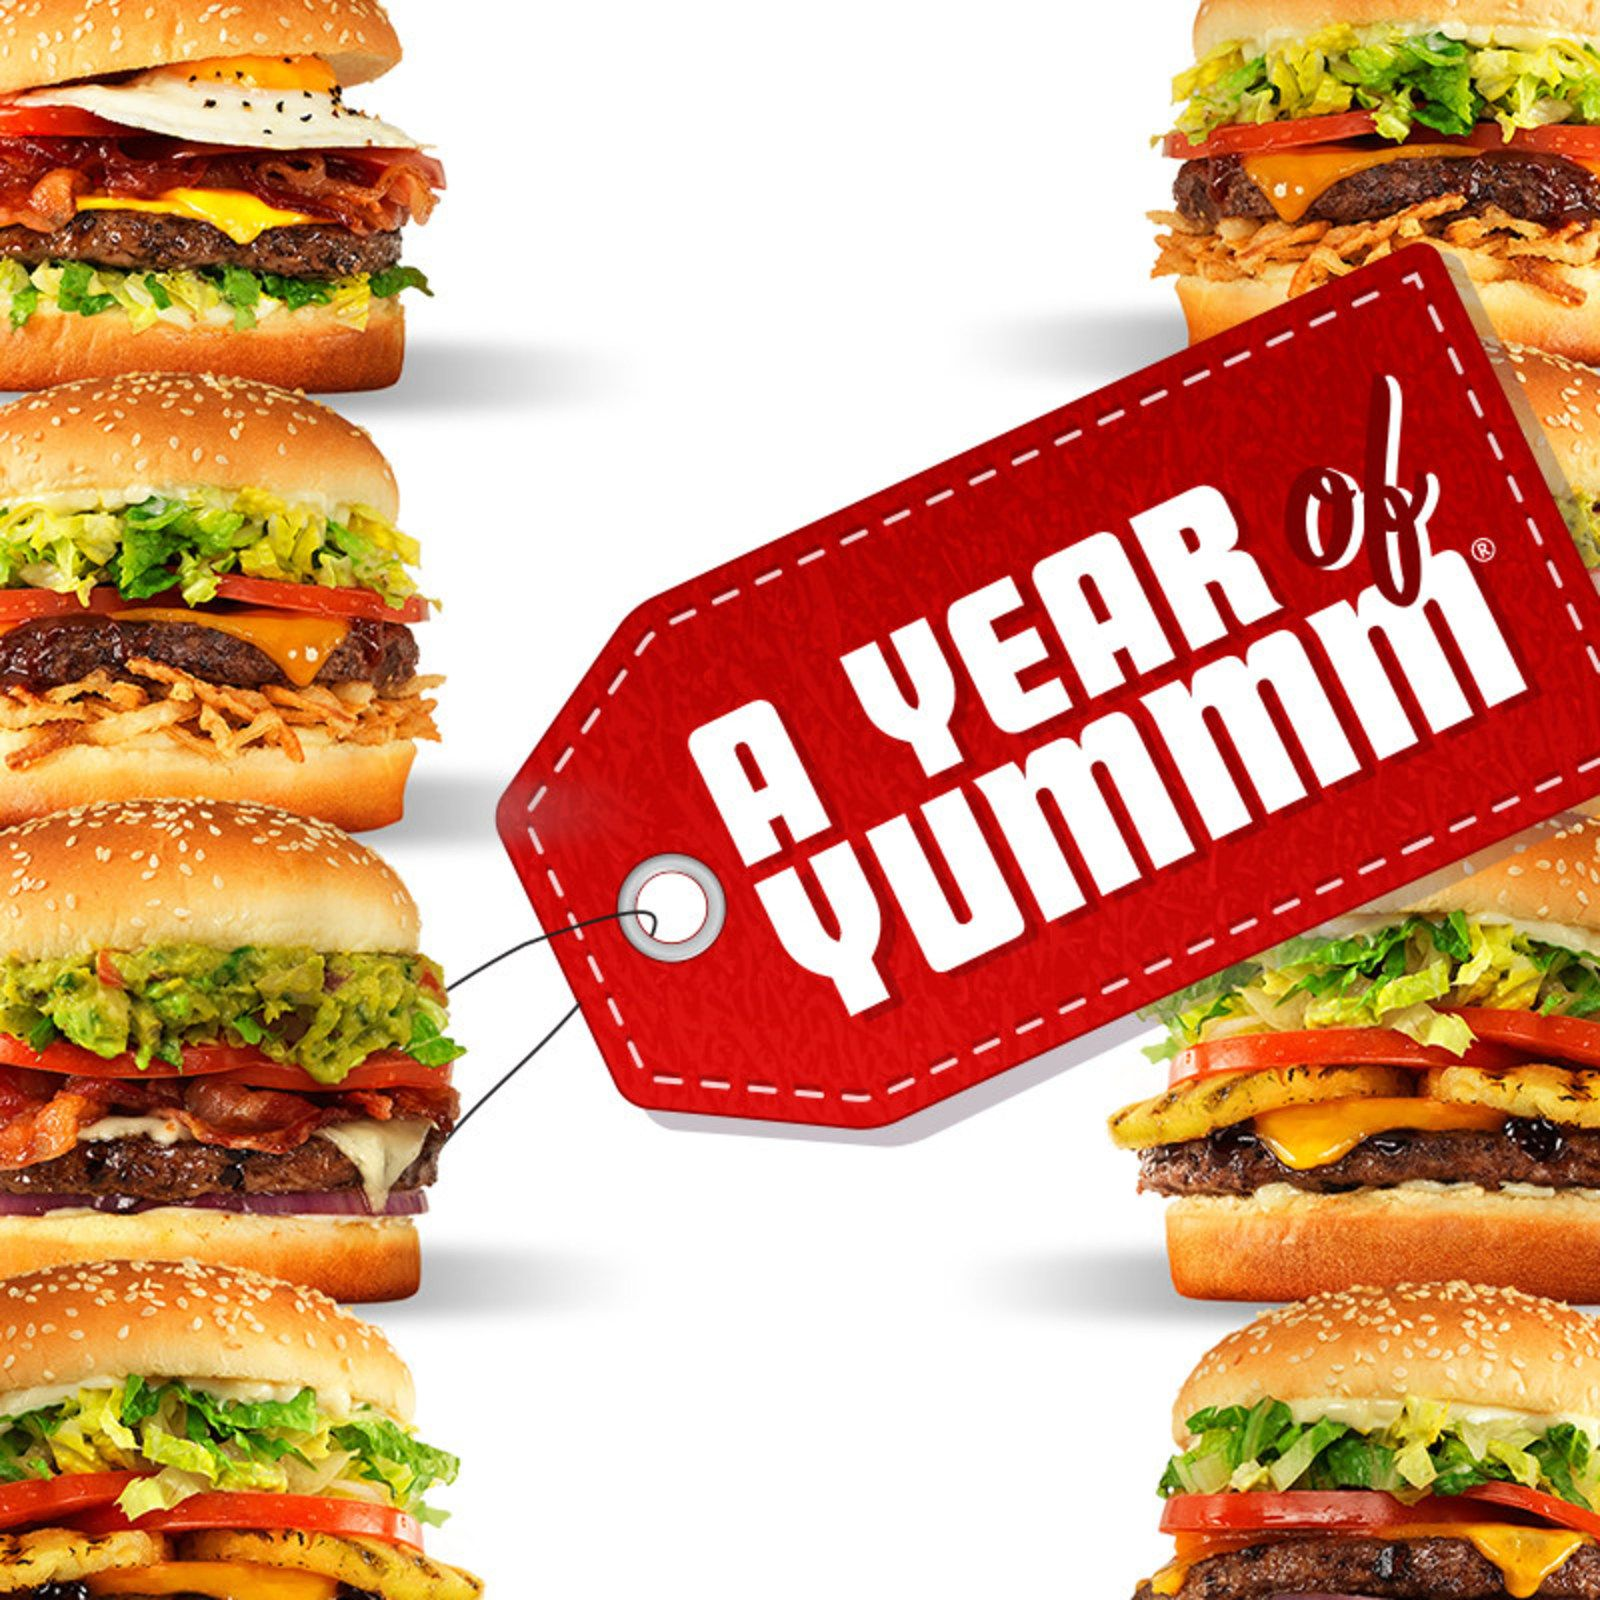 Red Robin Gourmet Burgers and Brews Introduces 'A Year of YUMMM' Burger Package